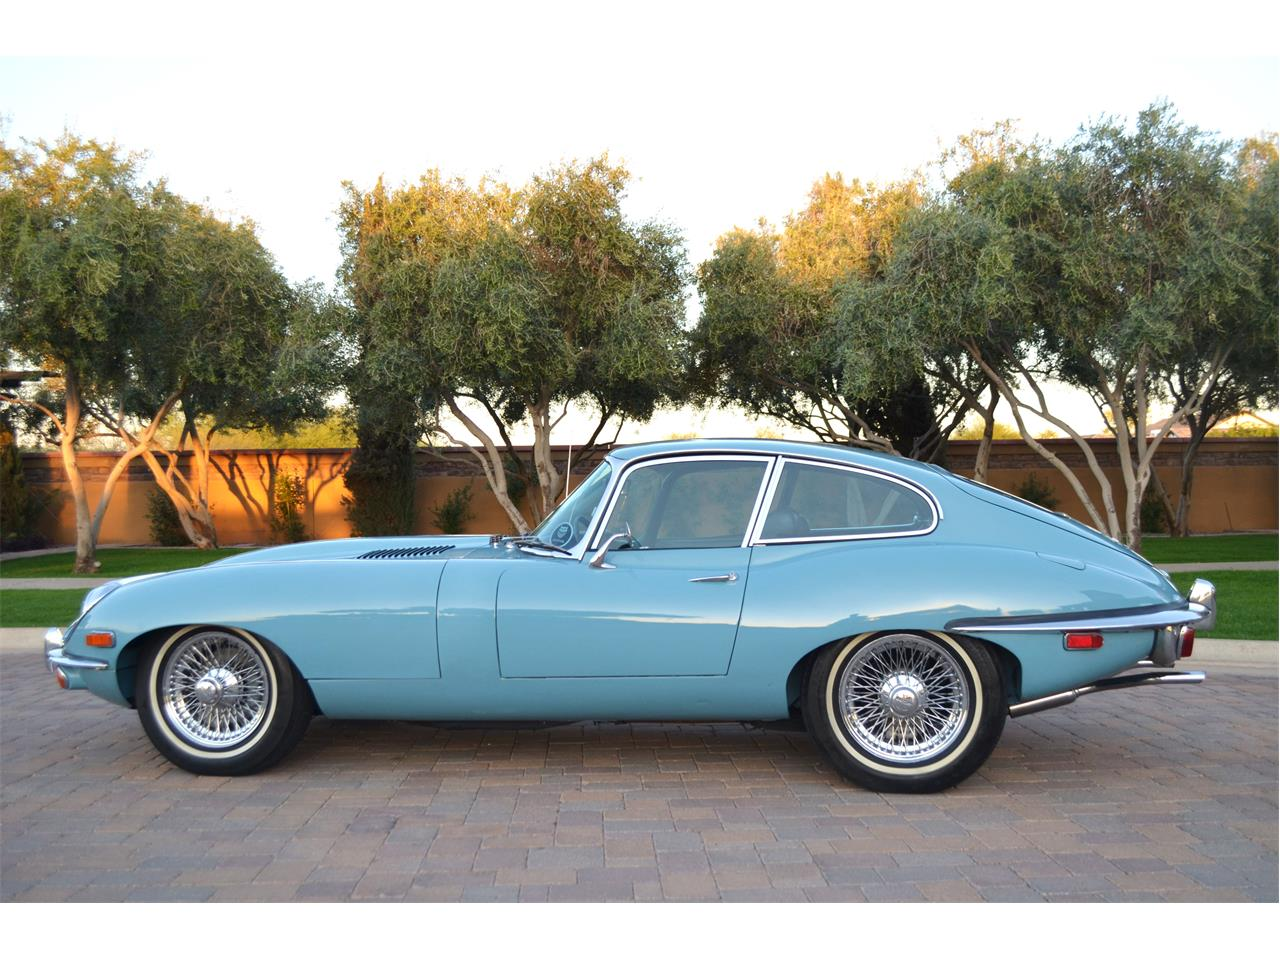 Large Picture of 1969 Jaguar E-Type located in Chandler  Arizona - $64,995.00 - PSWV